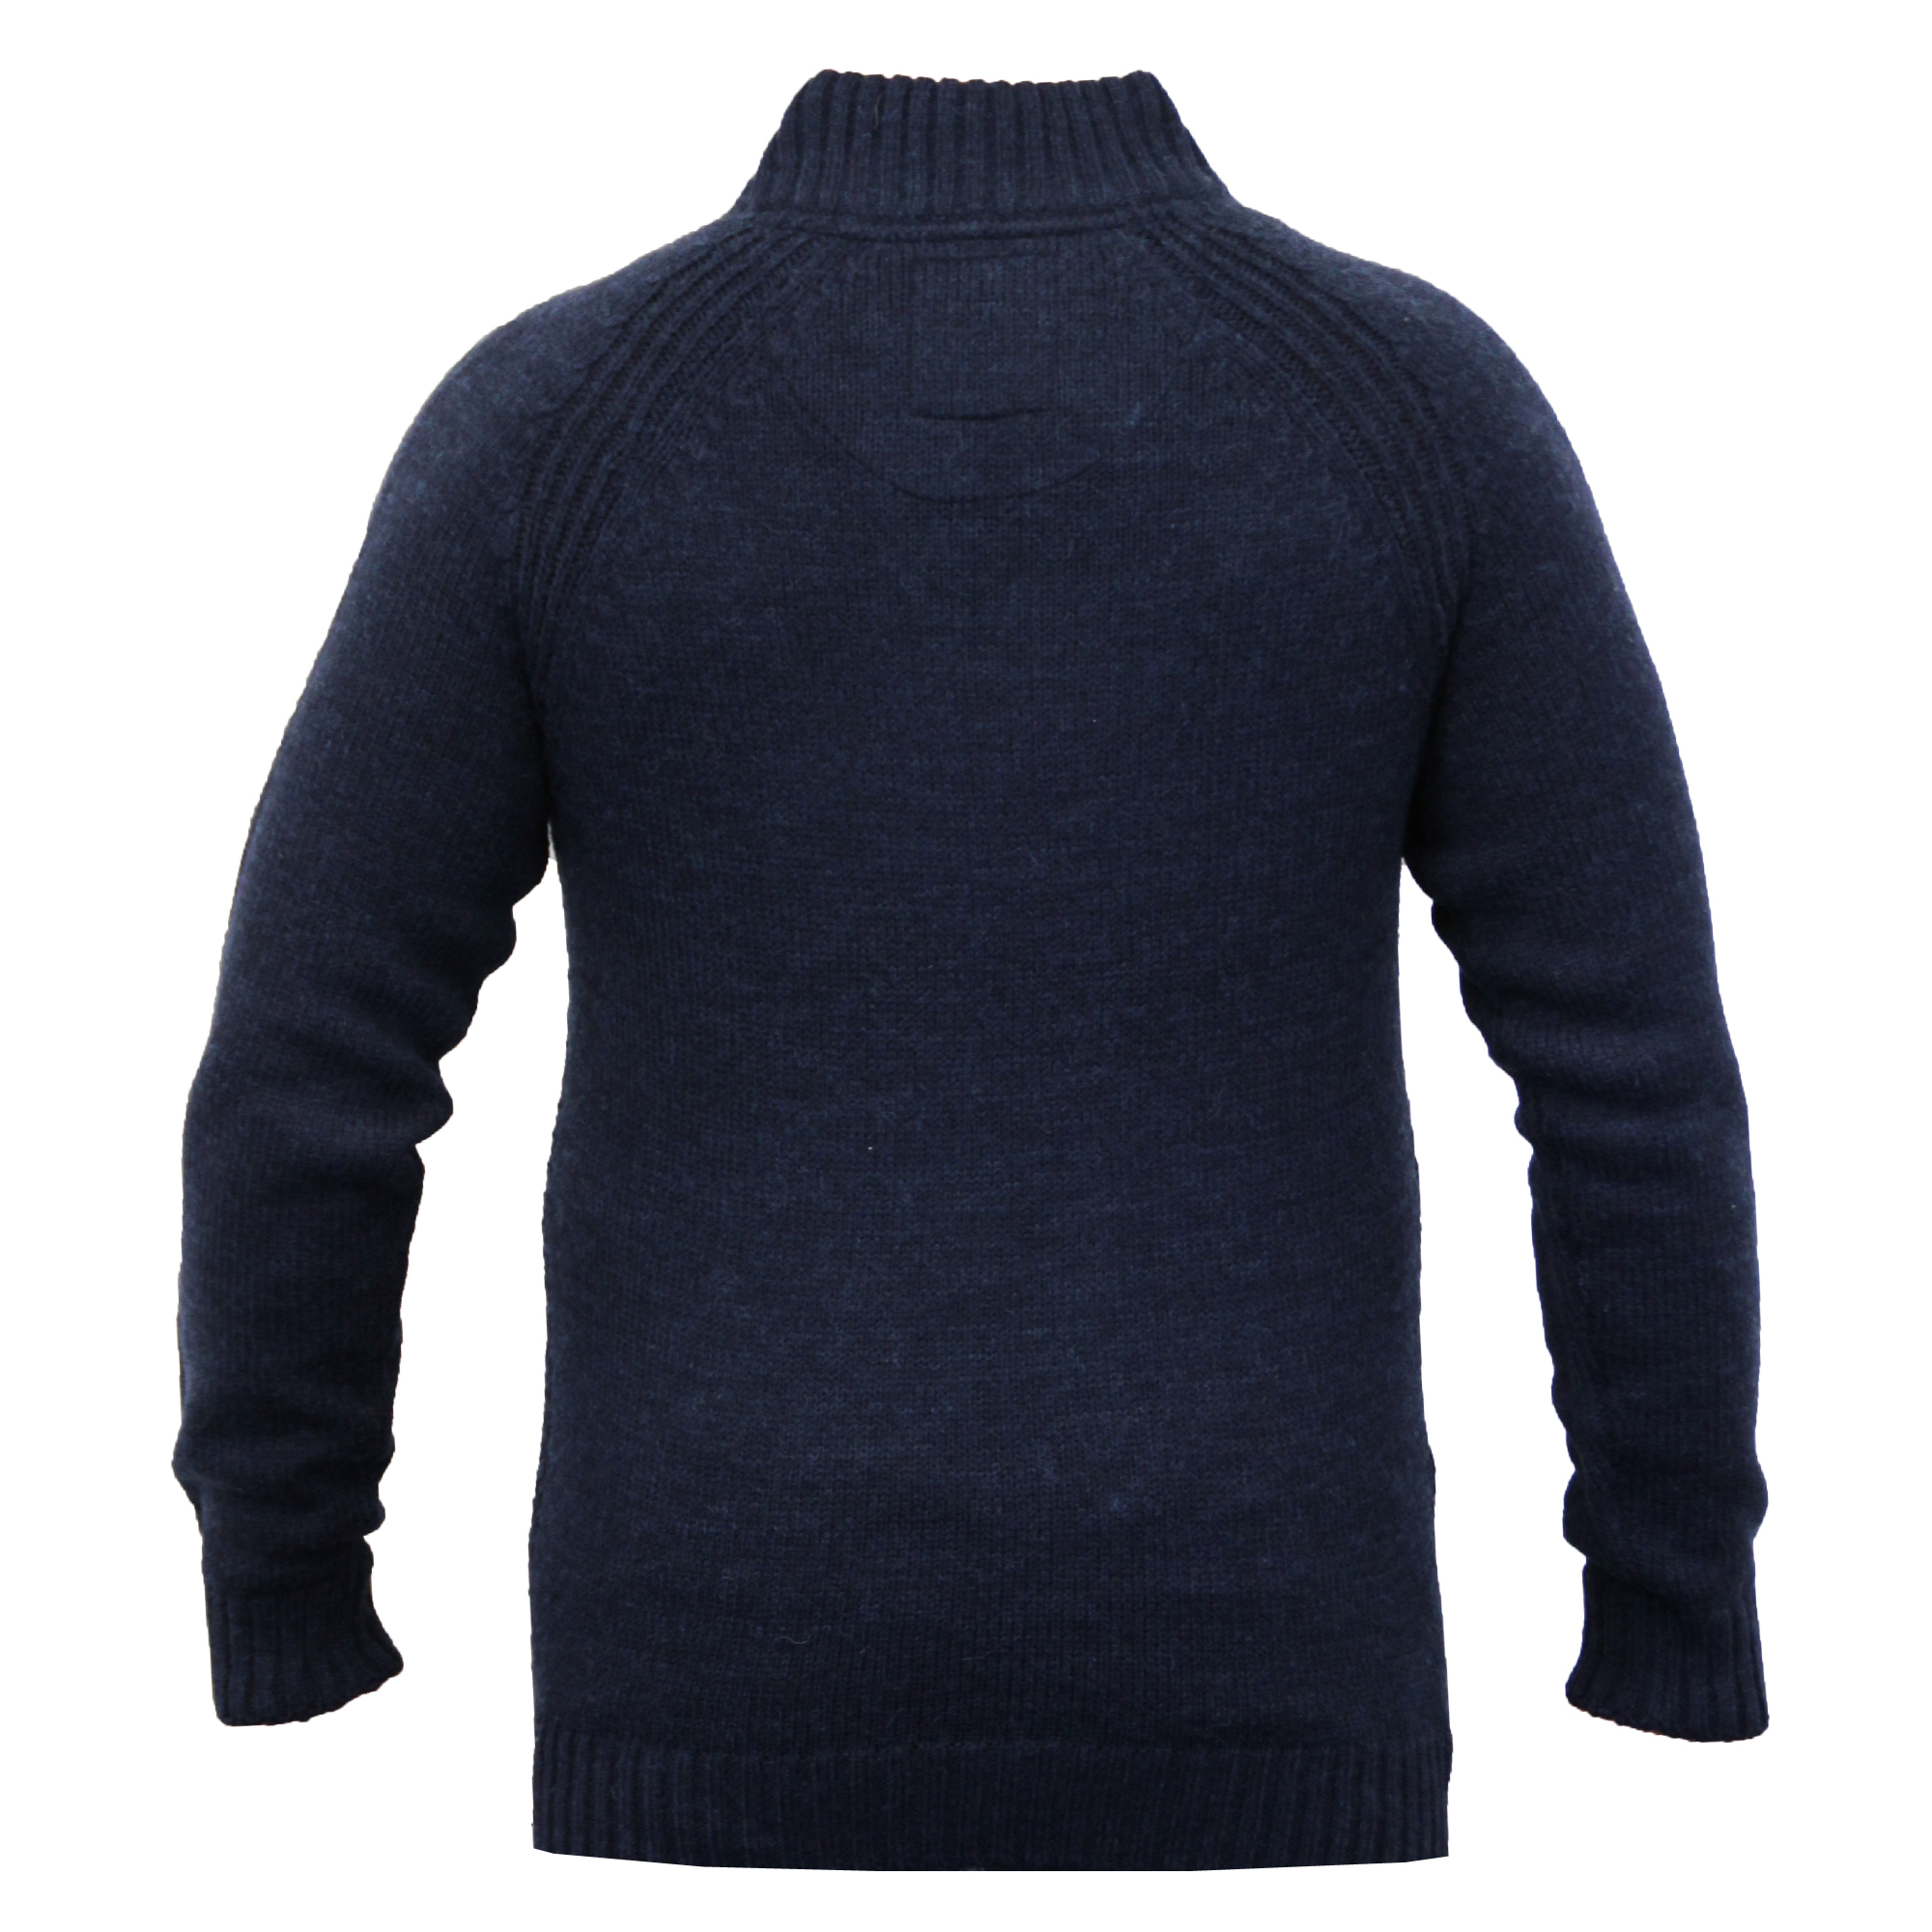 Mens Wool Mix Jumpers Threadbare Cable Knitted Sweater ...